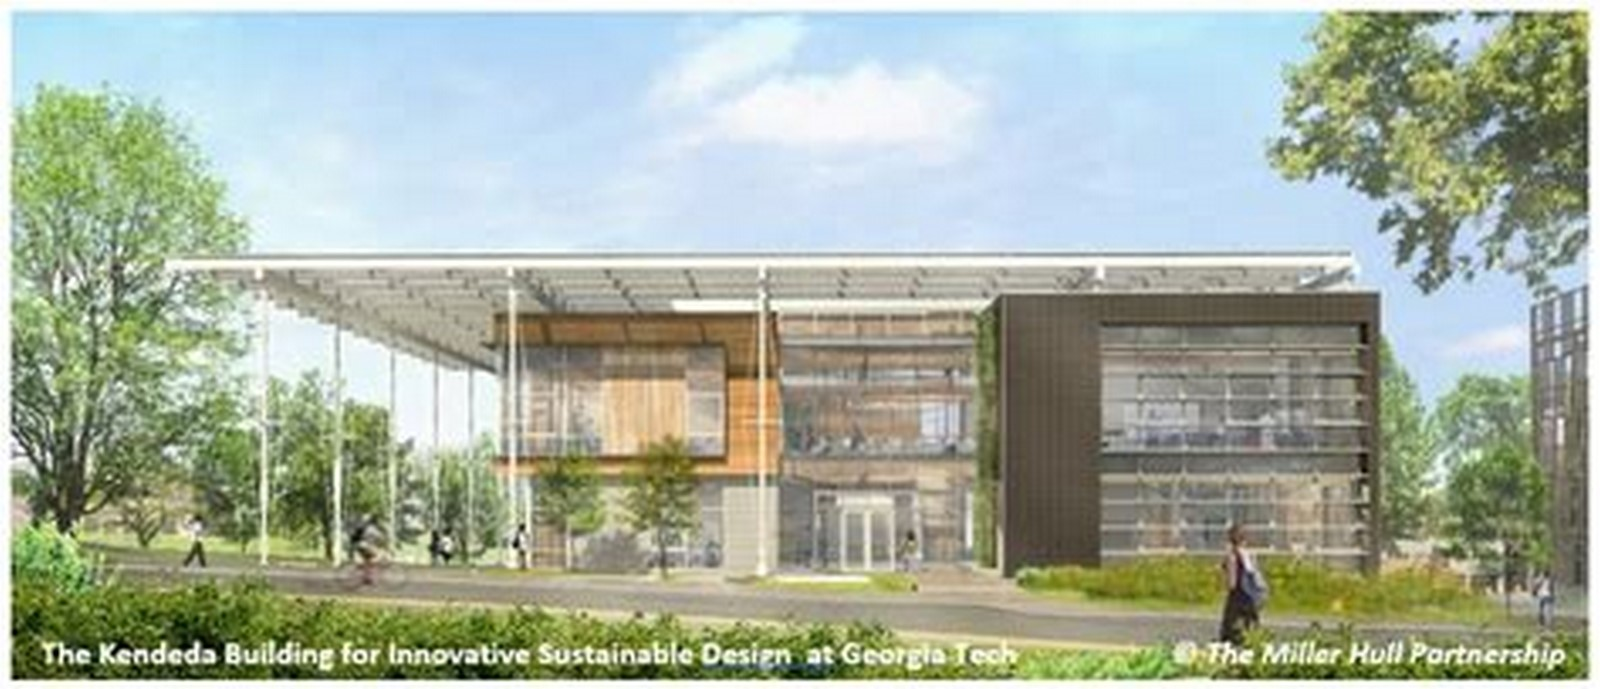 10 Architecture firms leading in sustainable architecture in US - Sheet6